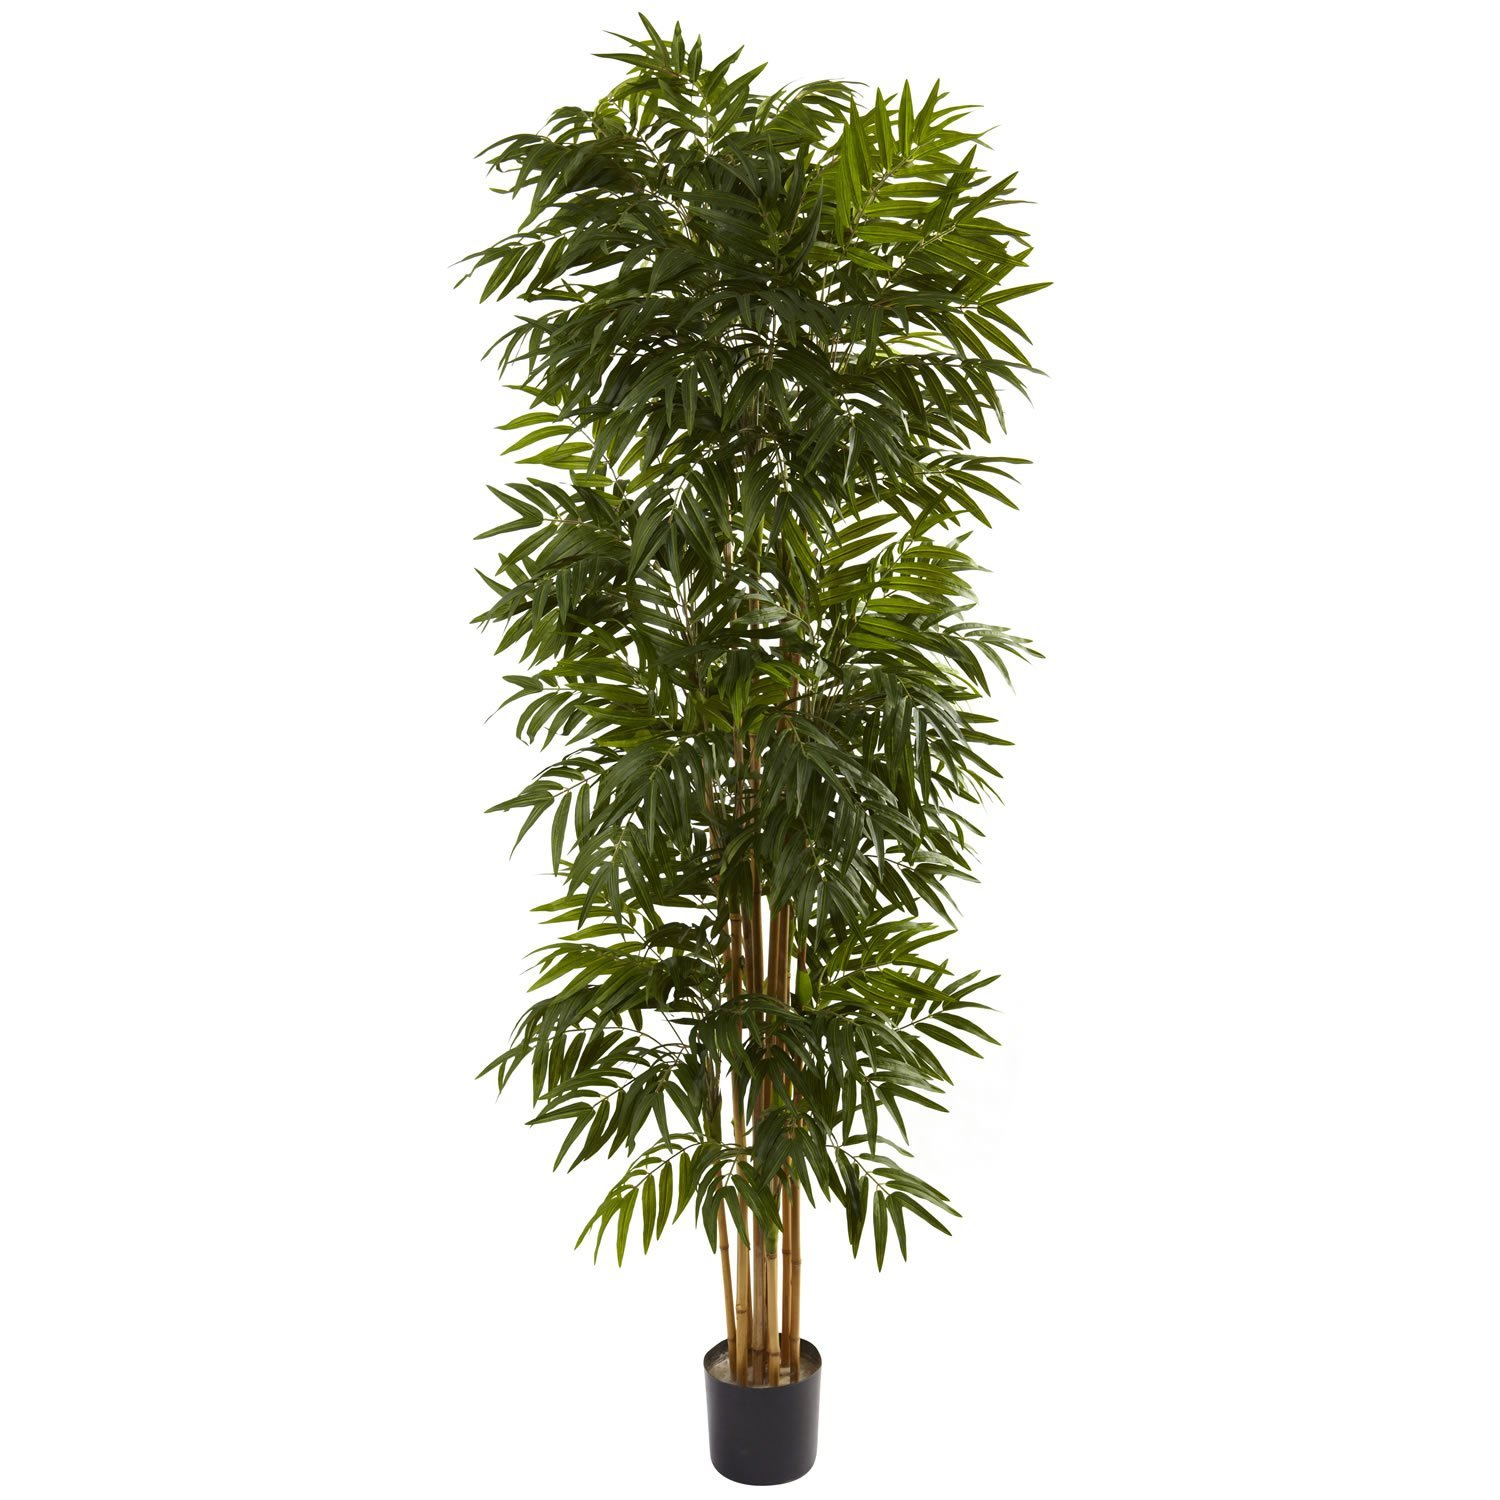 New 7.5' Phoenix Palm Tree Silk Tree